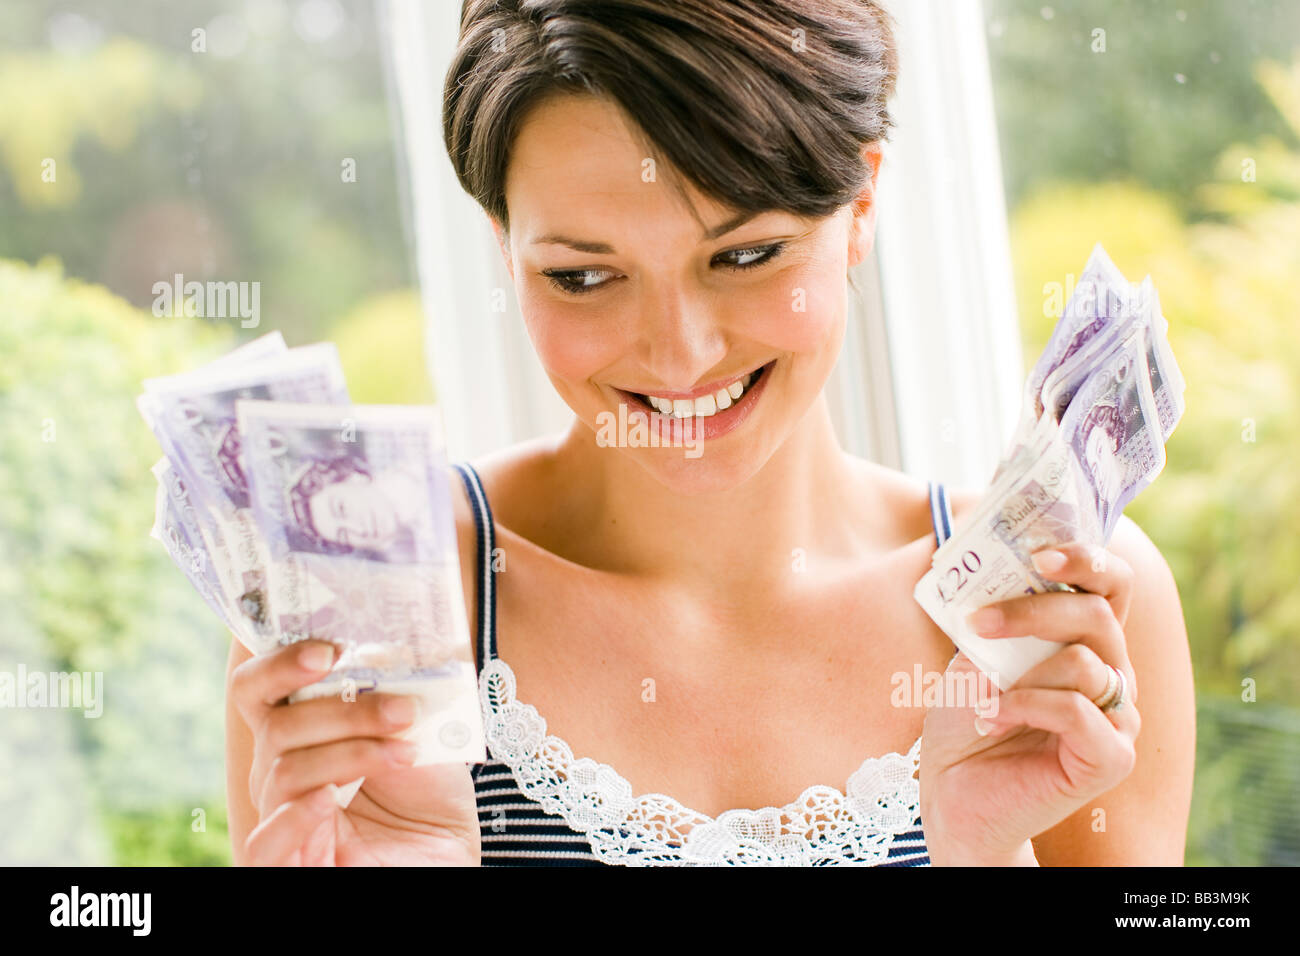 Girl with Cash - Stock Image